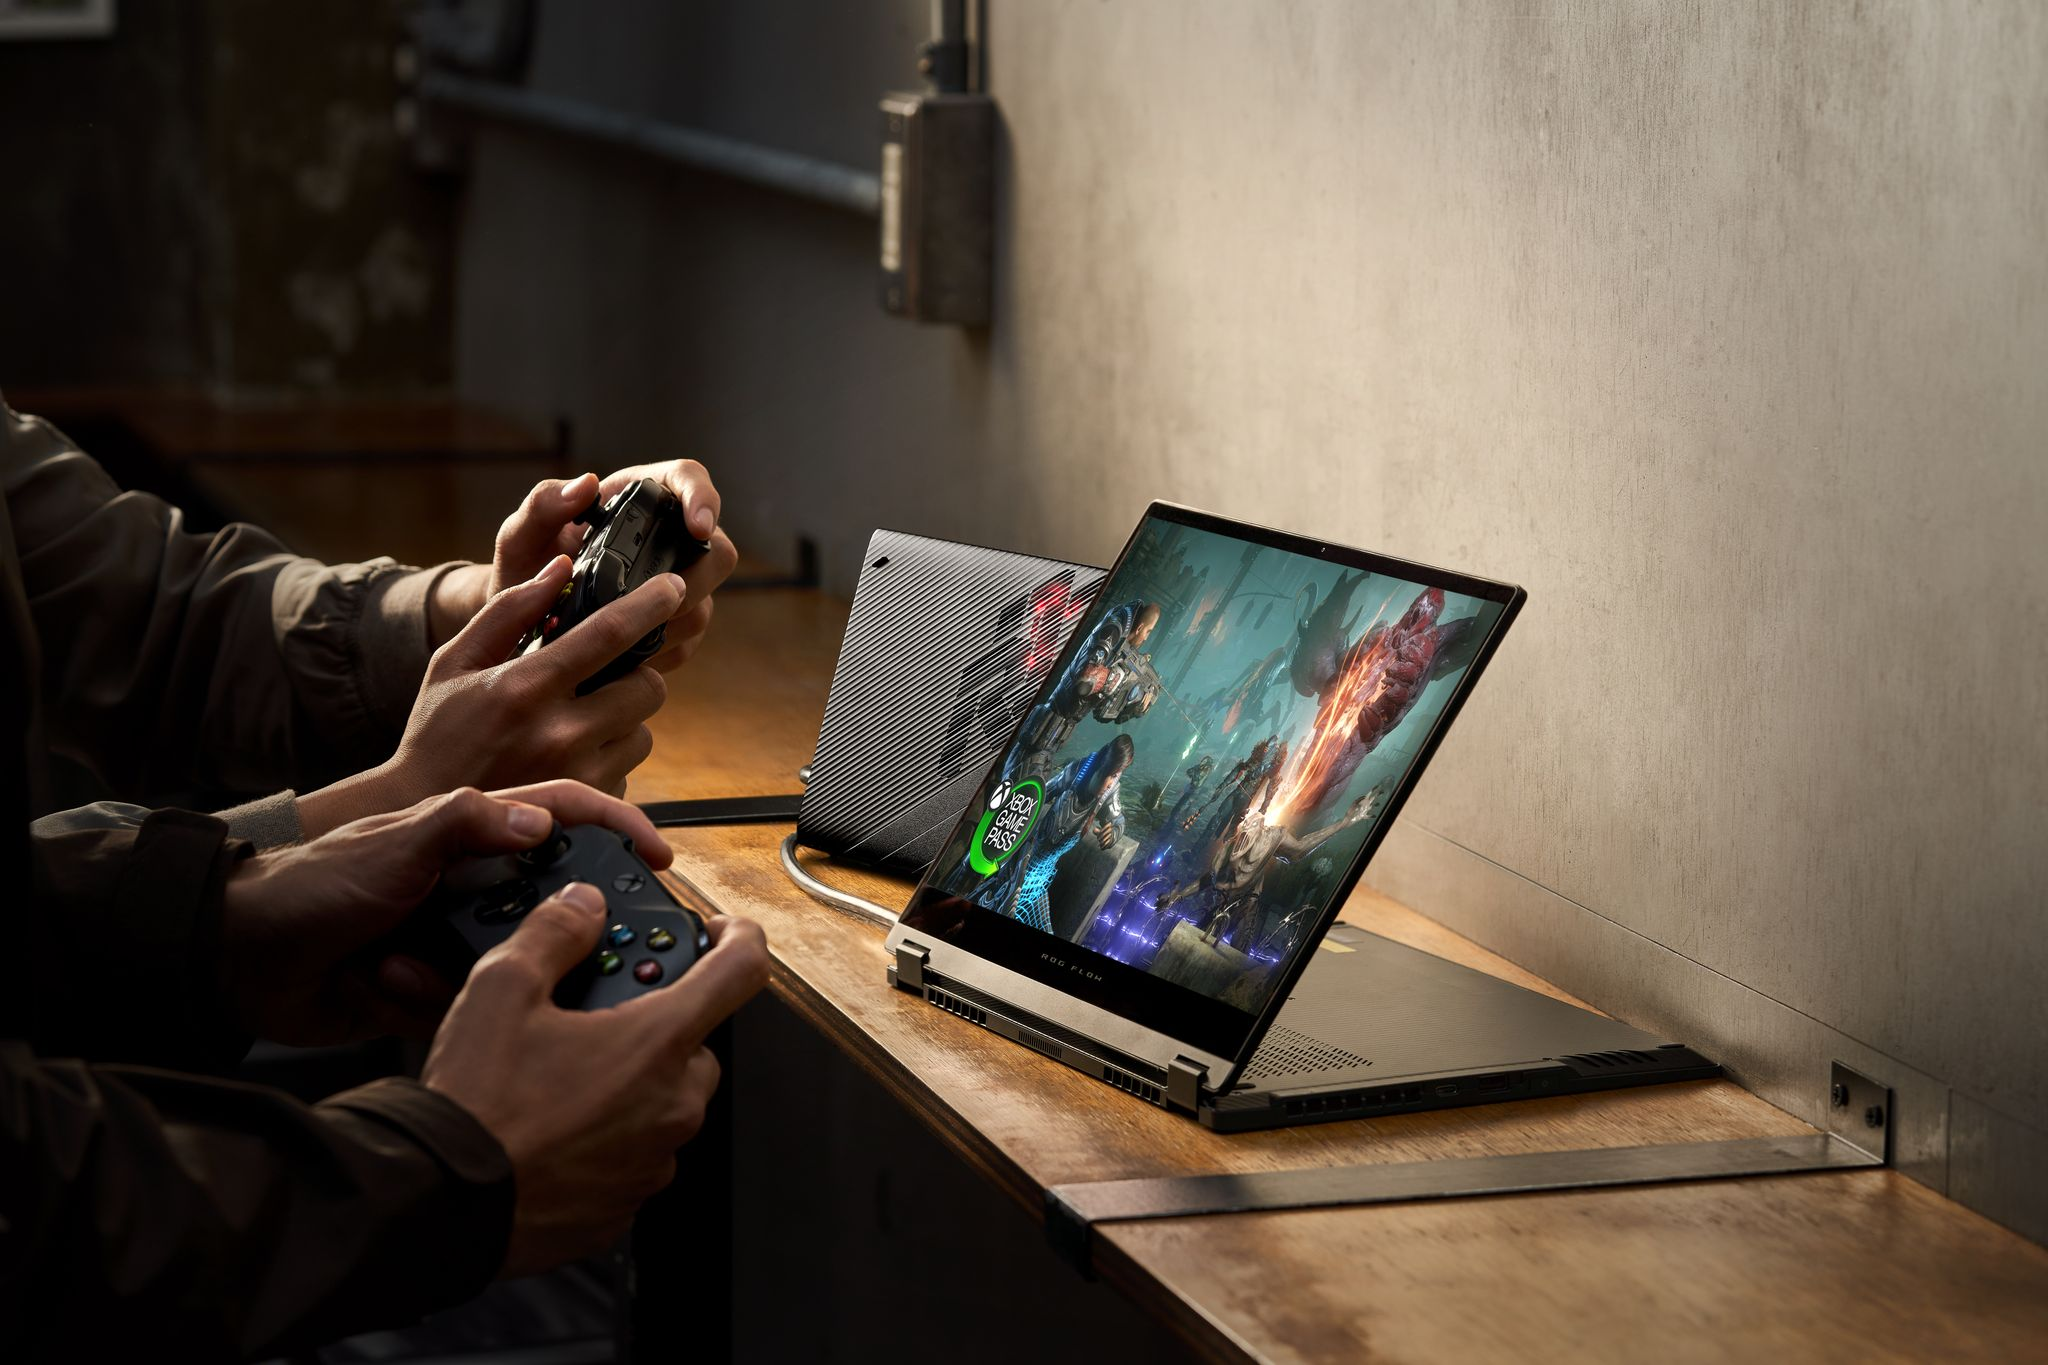 ROG Philippines Launches the ROG Flow X13 Convertible Gaming Laptop and ROG XG Mobile eGPU